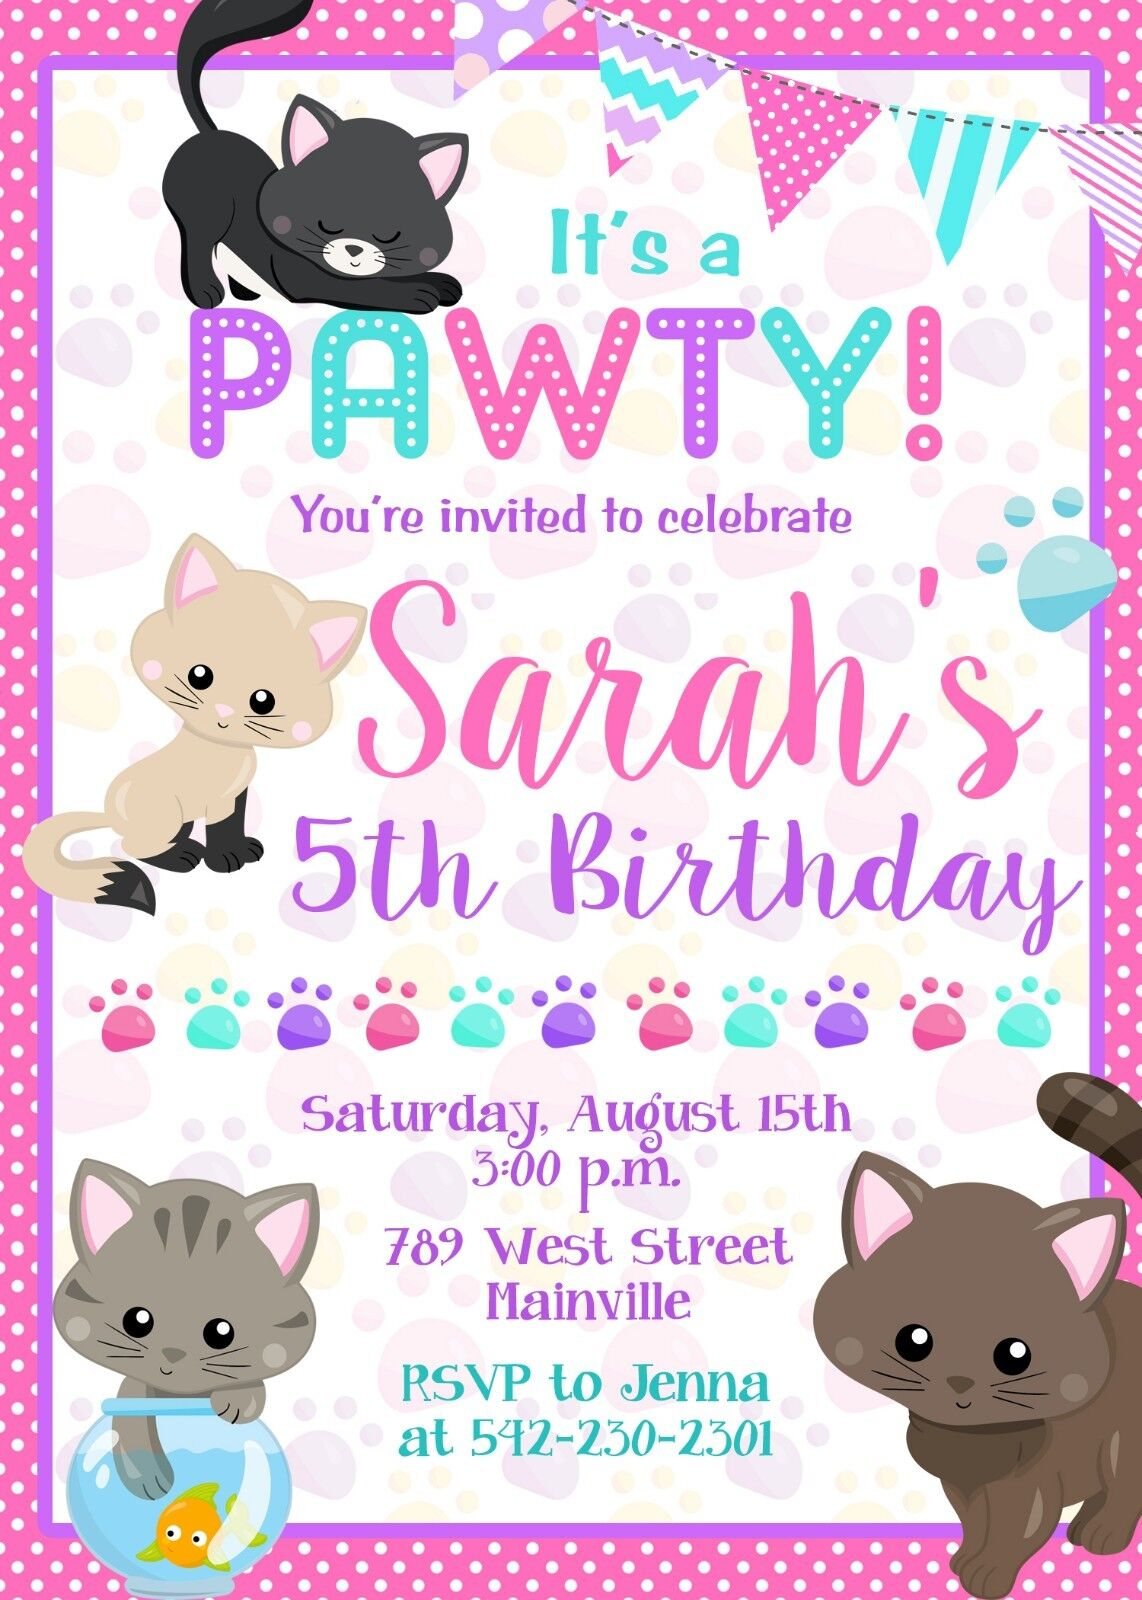 Cat Kitten Kitty Birthday Birthday Kitty Party Invitation Girl